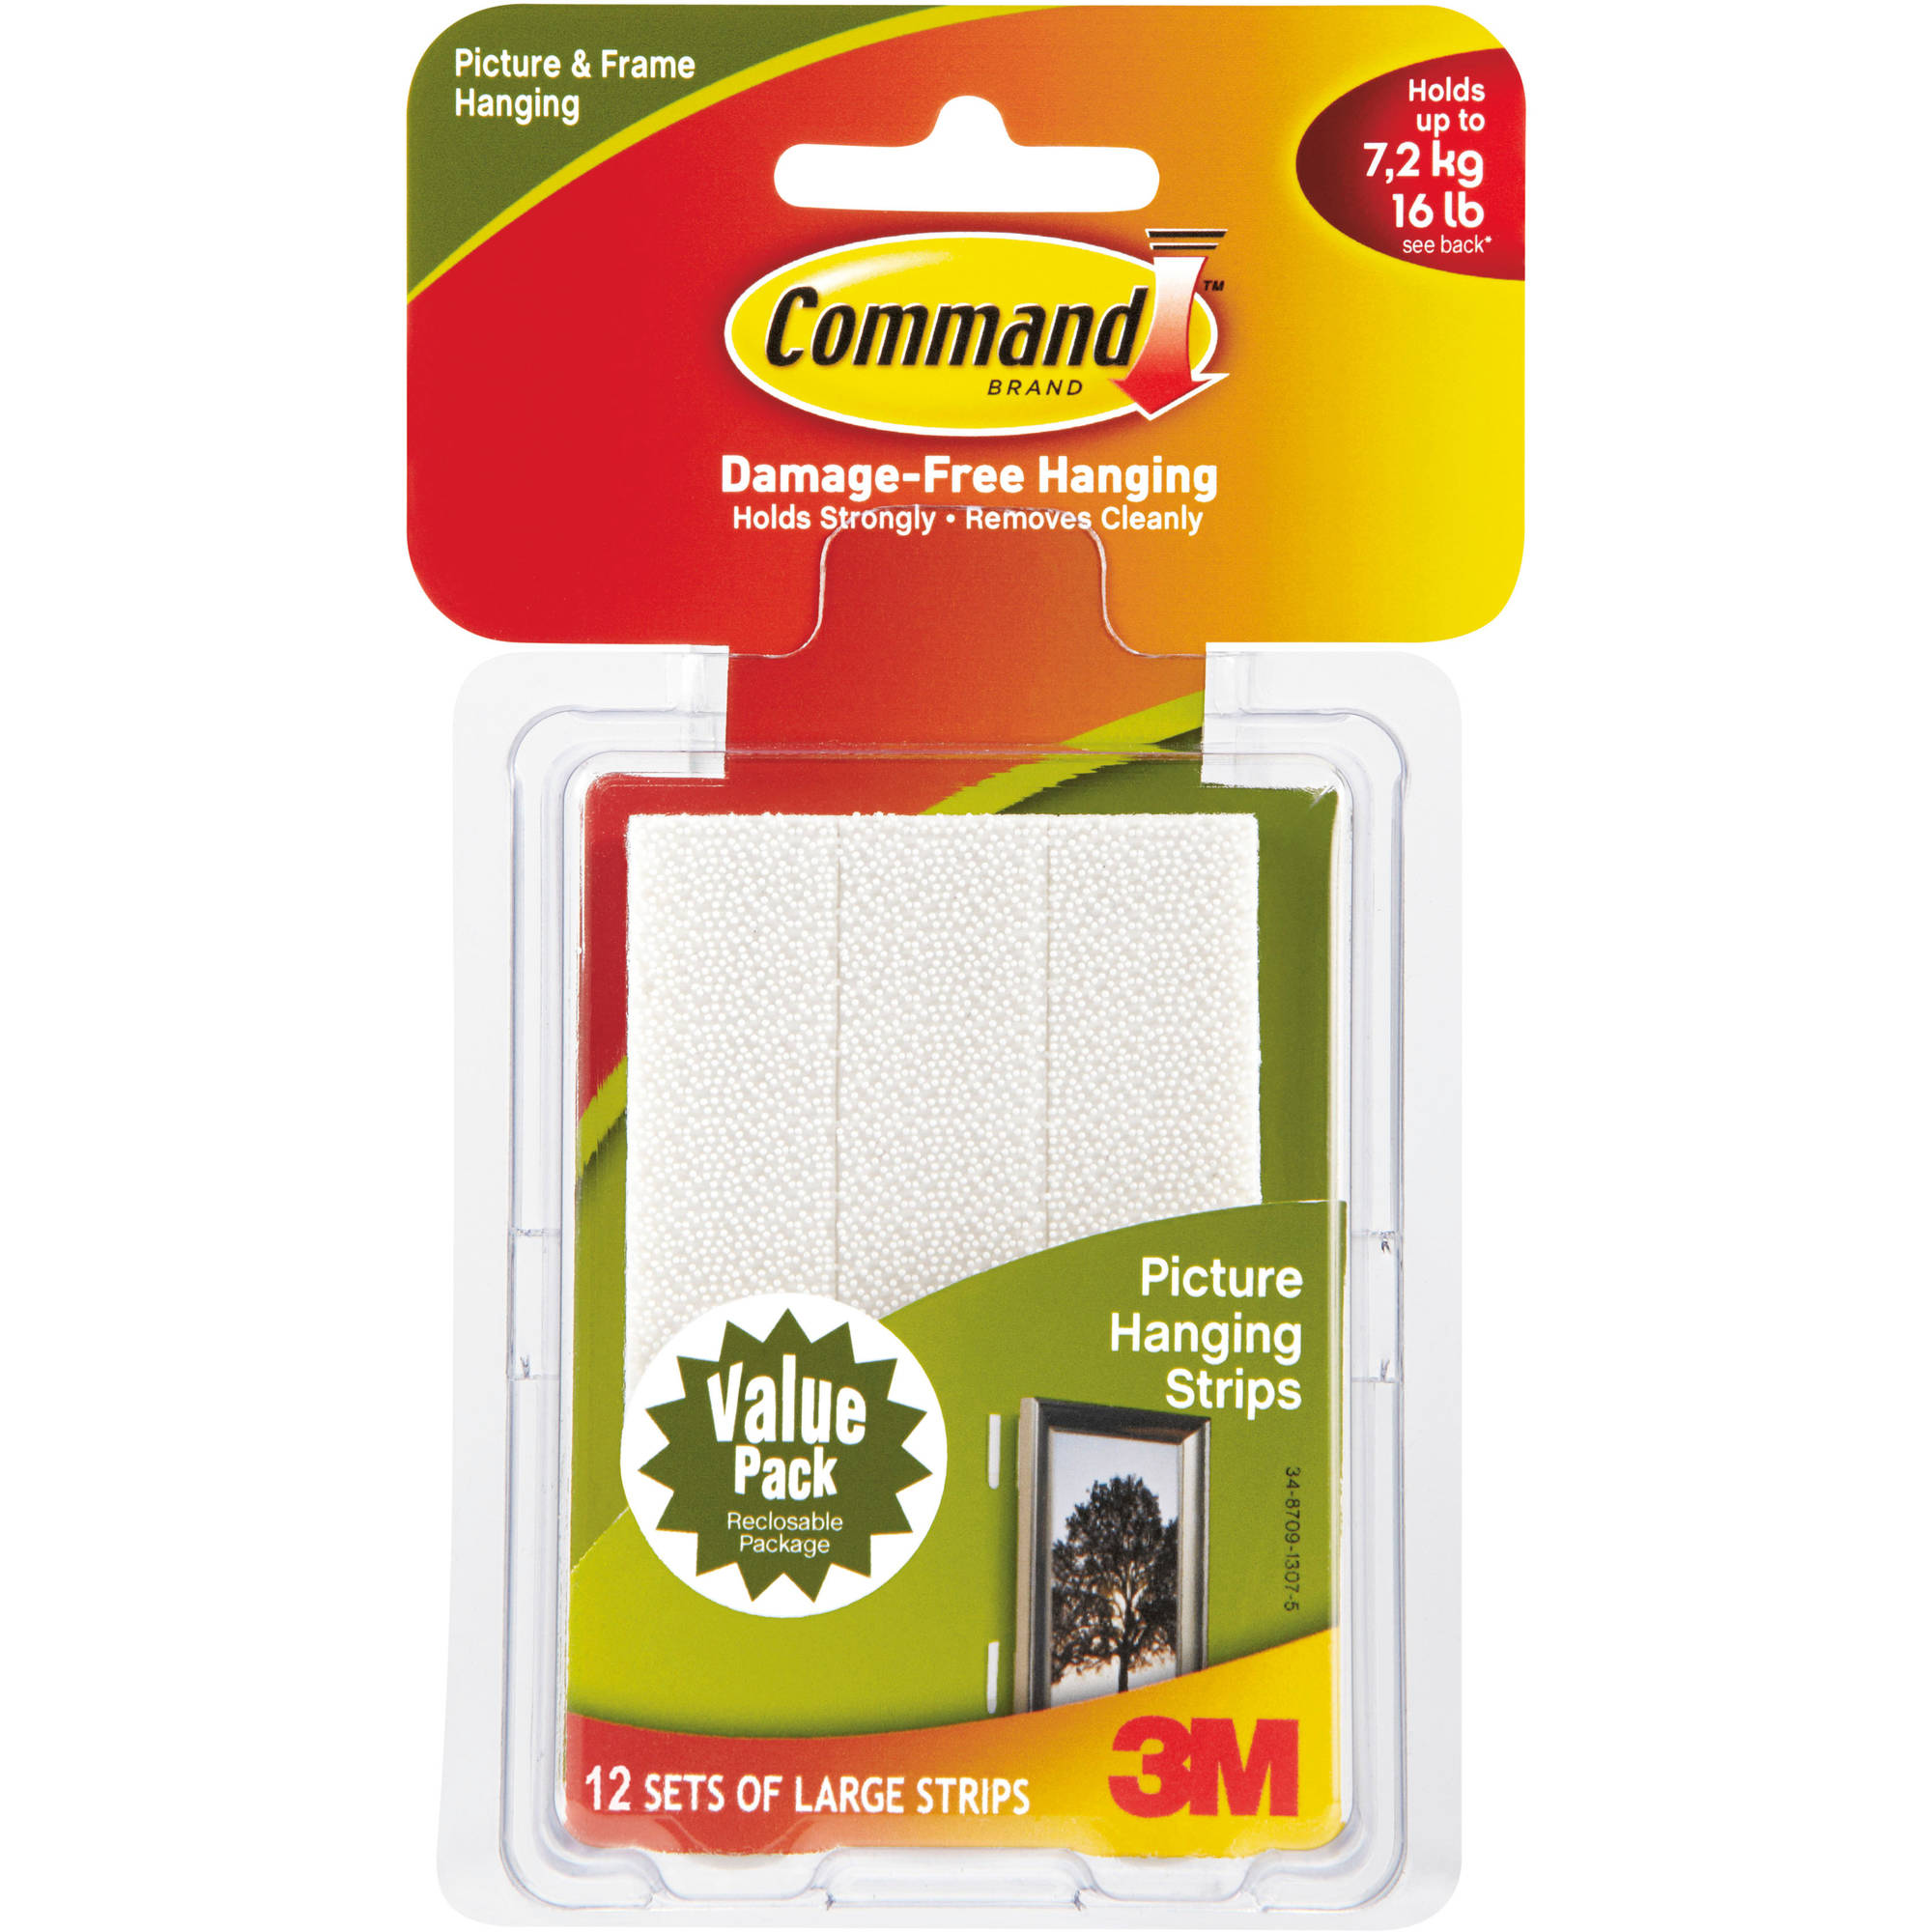 Command Large Picture Hanging Strips Value Pack, White, 12 Sets of Strips/Pack